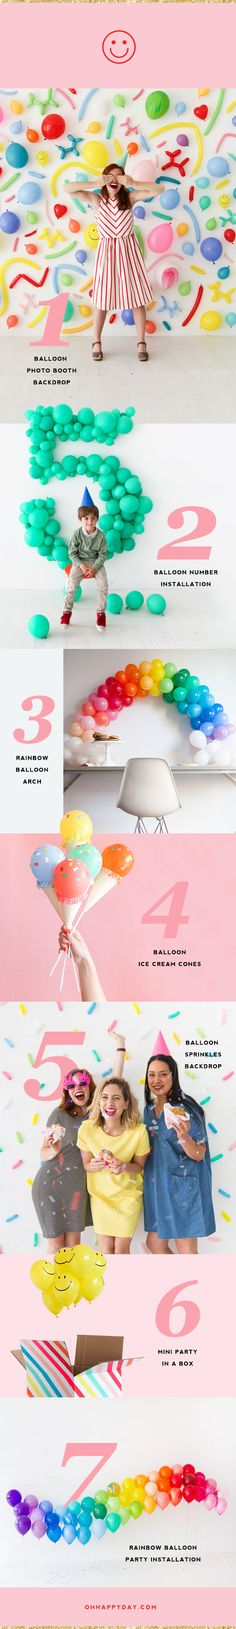 7 Awesome Balloon Pr